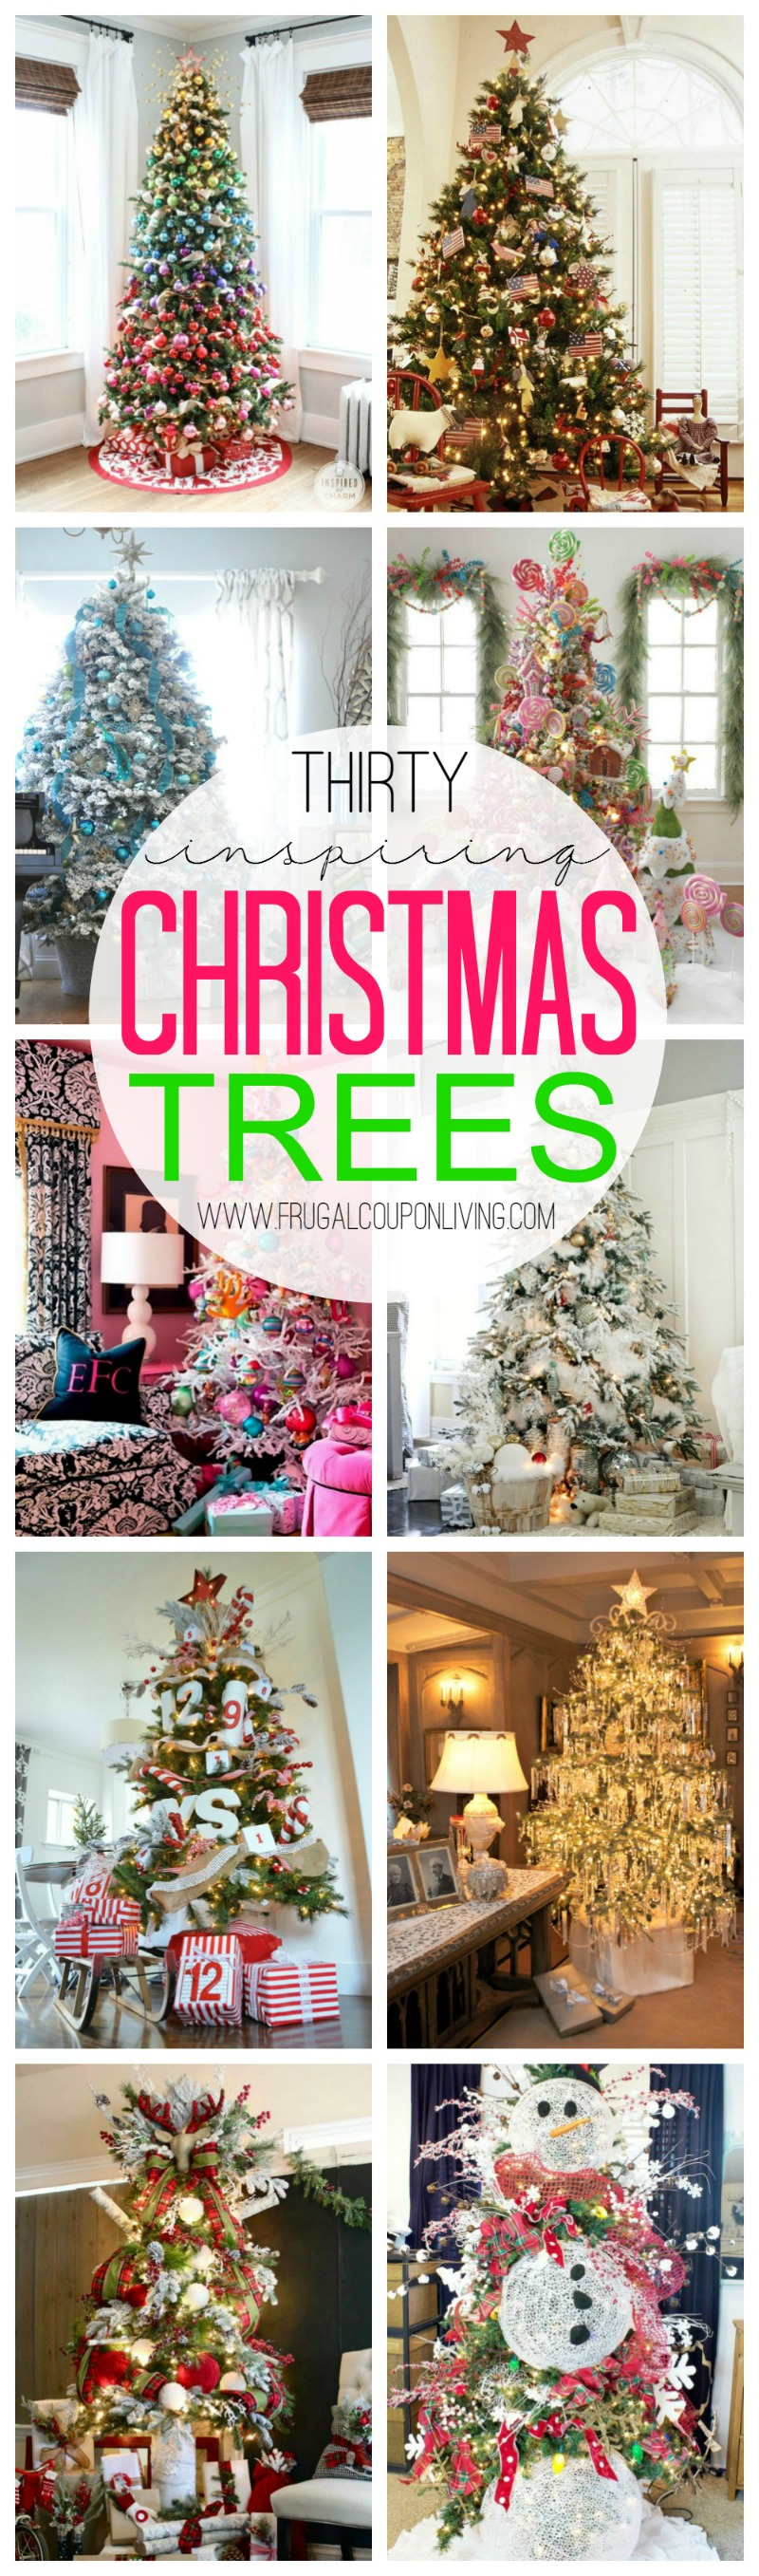 Thirty Inspiring Christmas Trees on Frugal Coupon Living